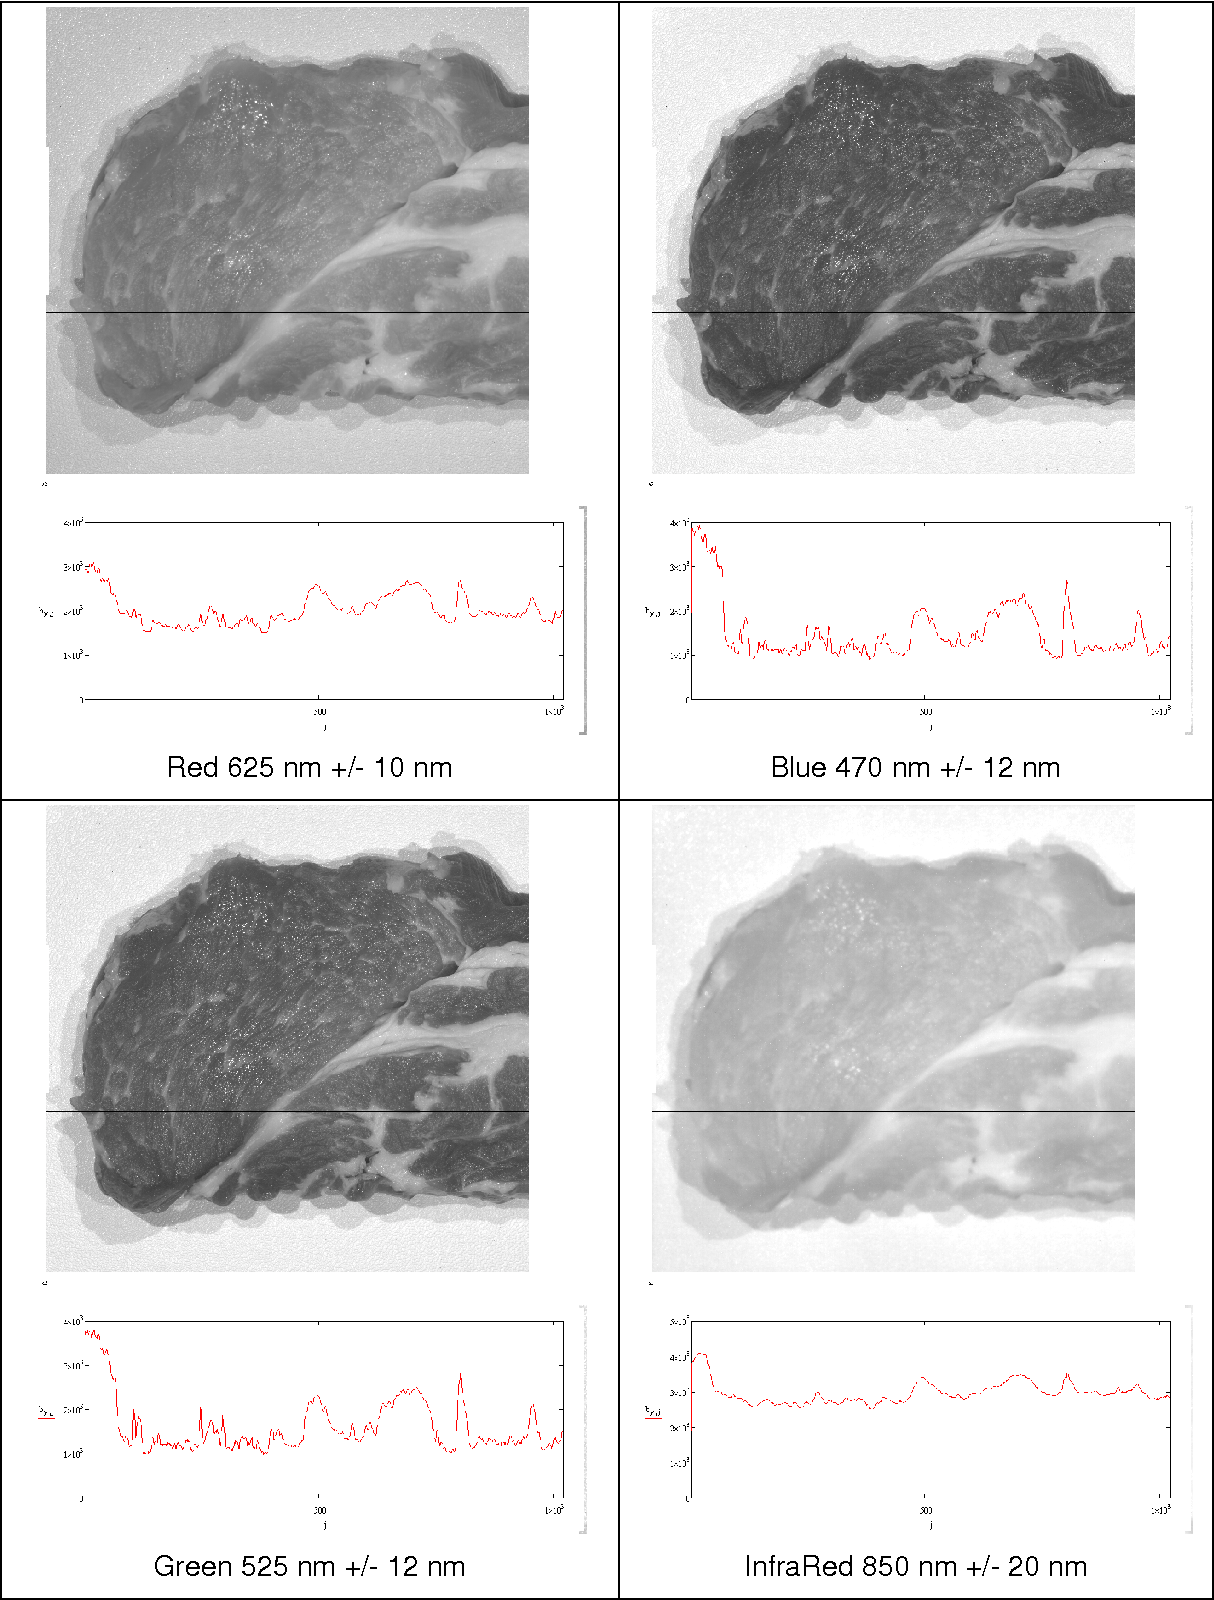 FIGURE 1: High resolution image of a rib sample recorded applying quasi-monochromatic illumination alternatives (LED modules) with the corresponding intensity diagrams of the multispectral rib images at the marked image-row